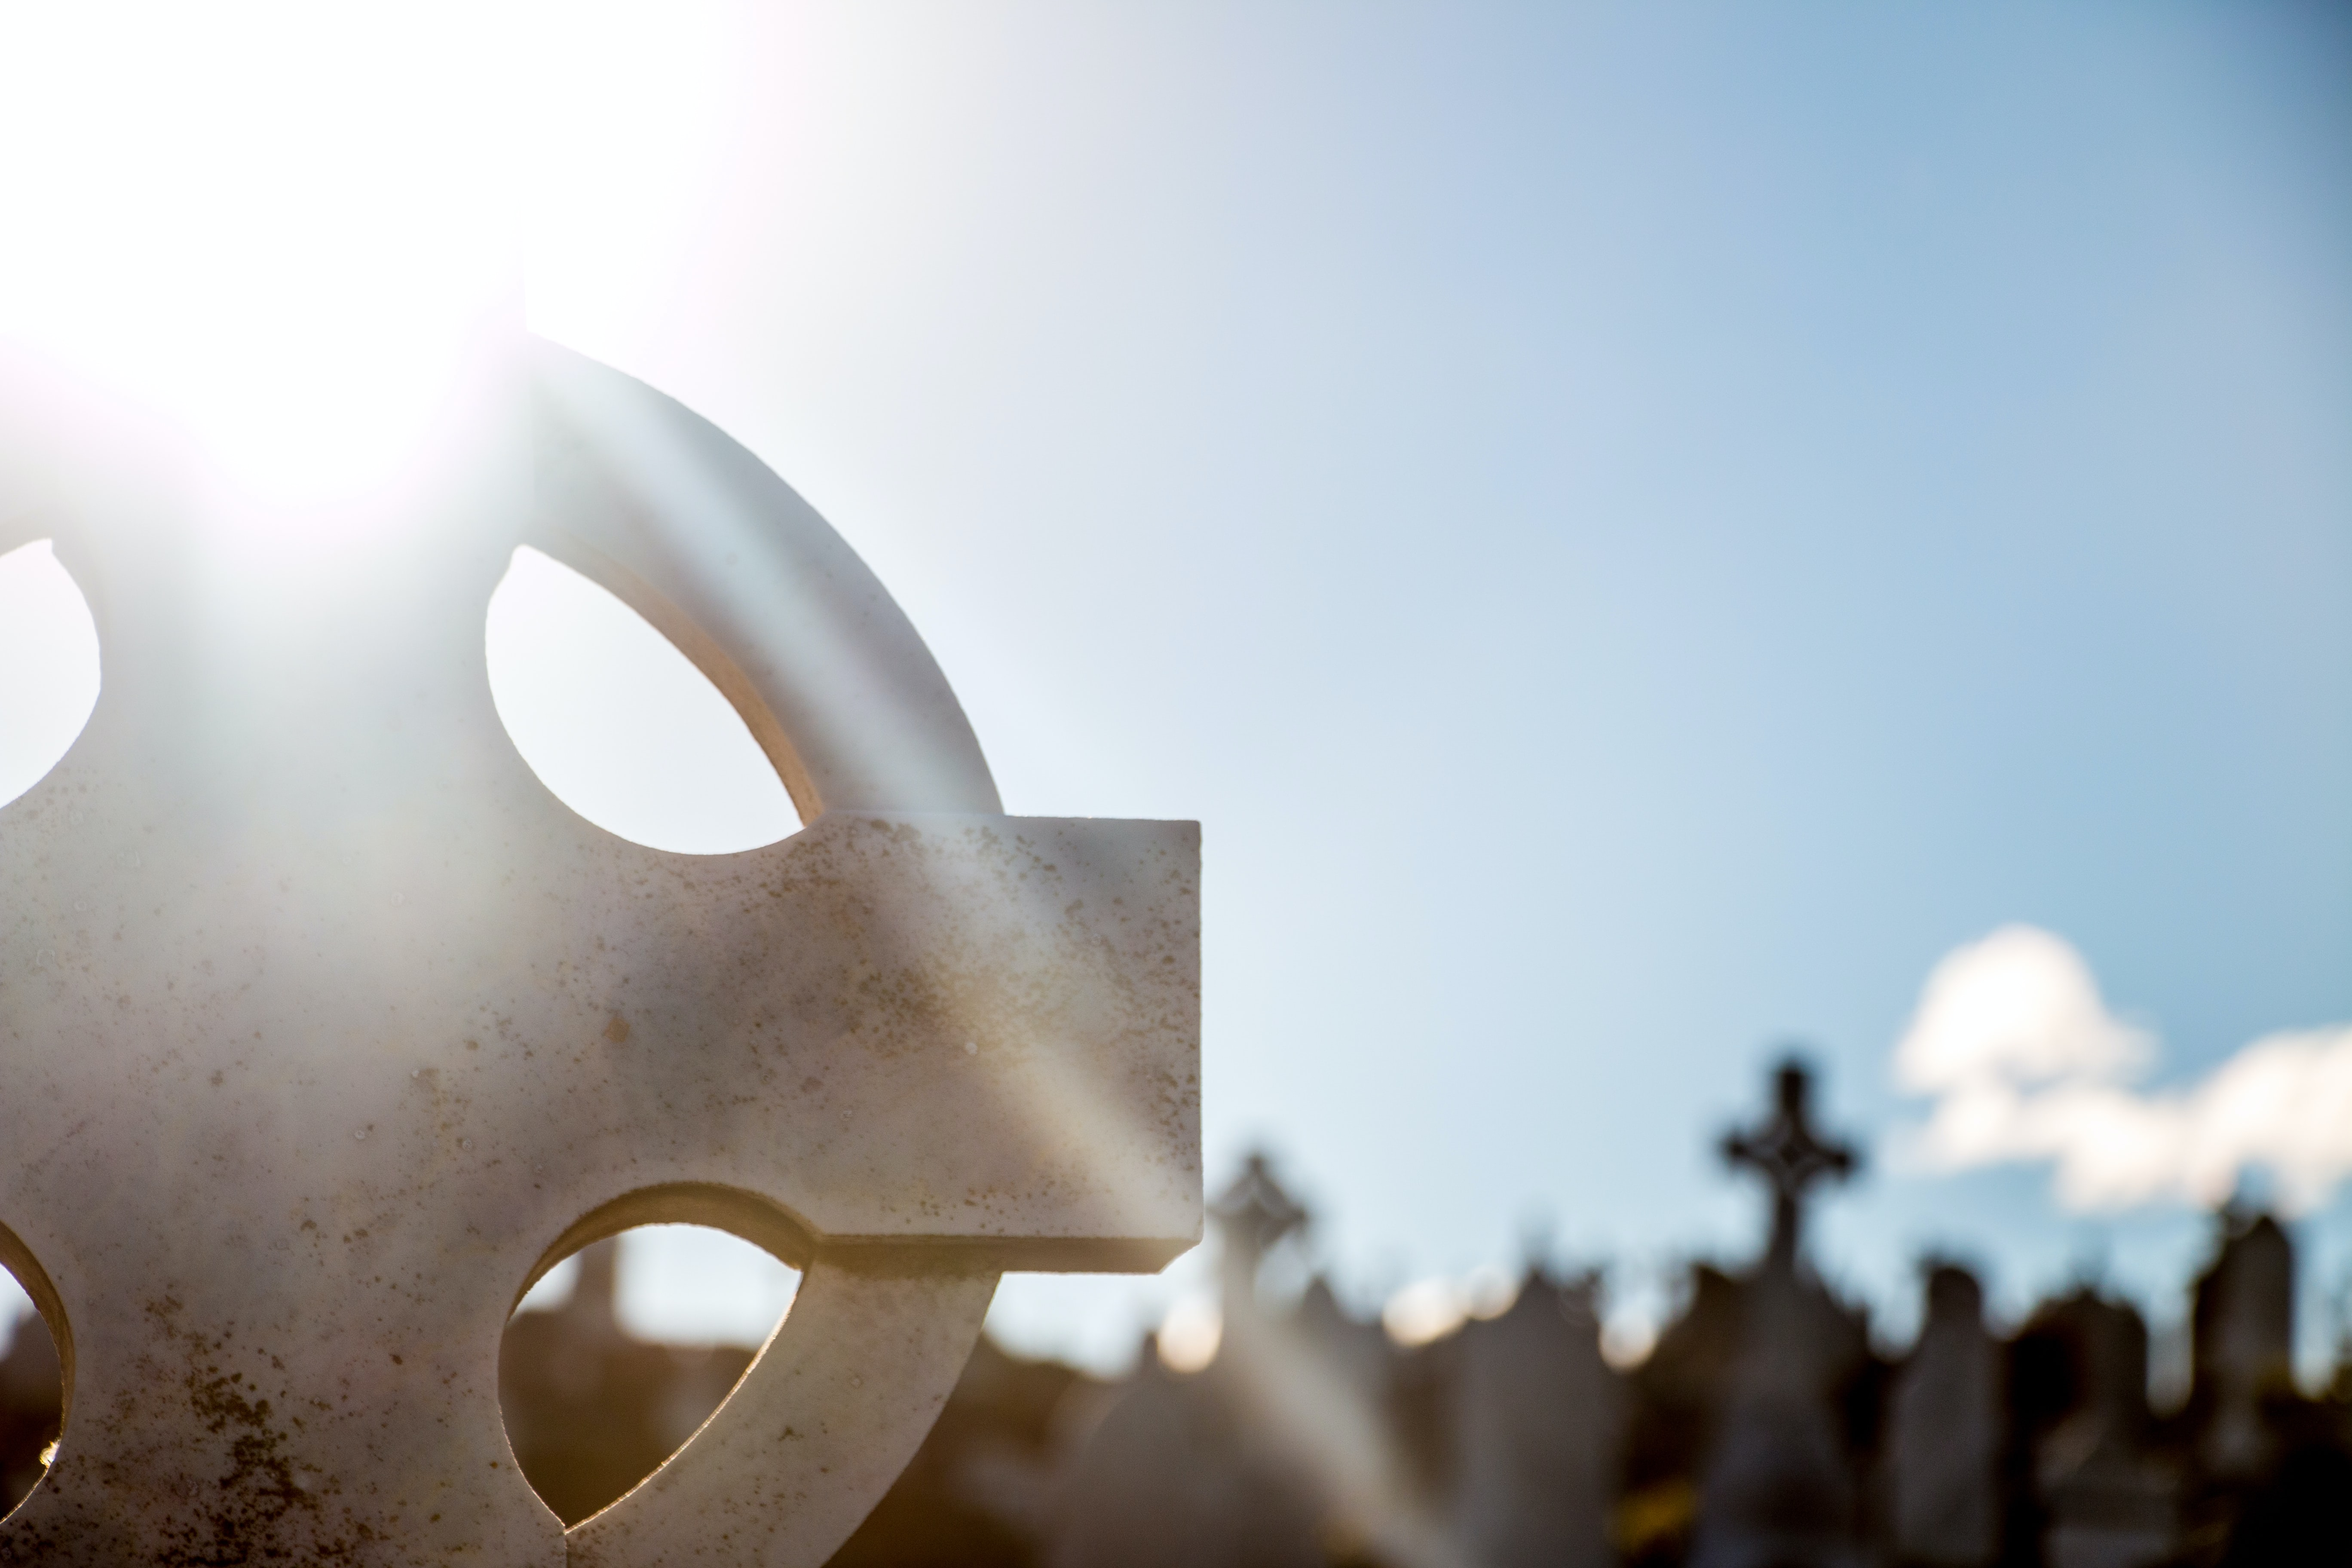 Sunbeams shine over a cross tombstone in a graveyard